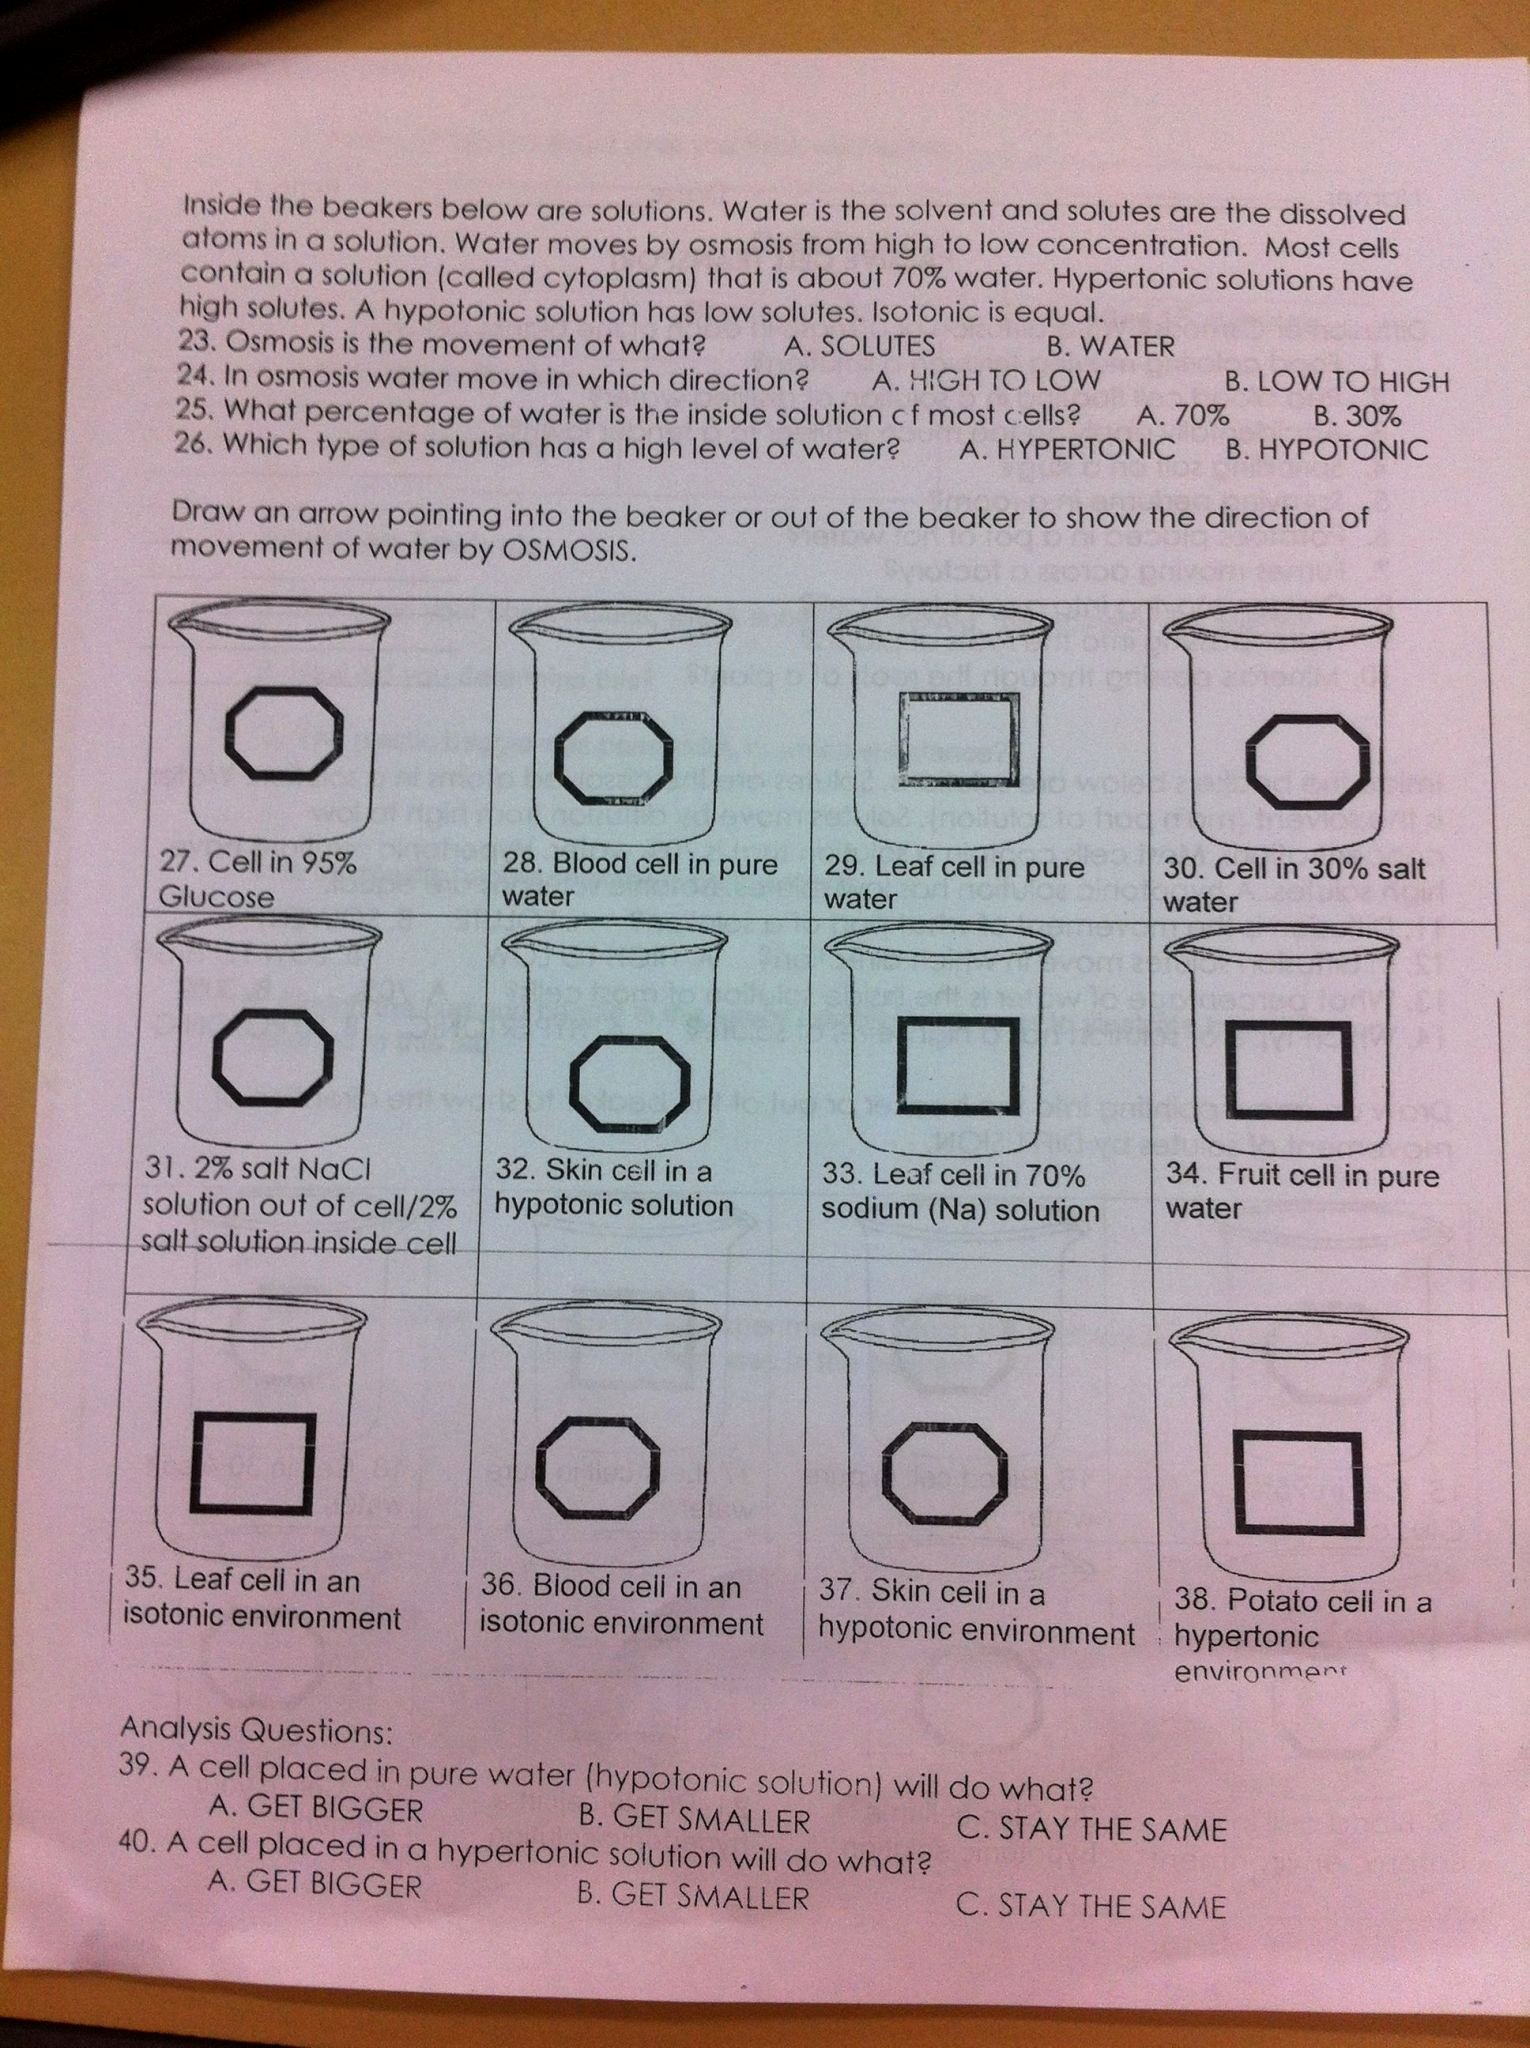 50 Passive And Active Transport Worksheet